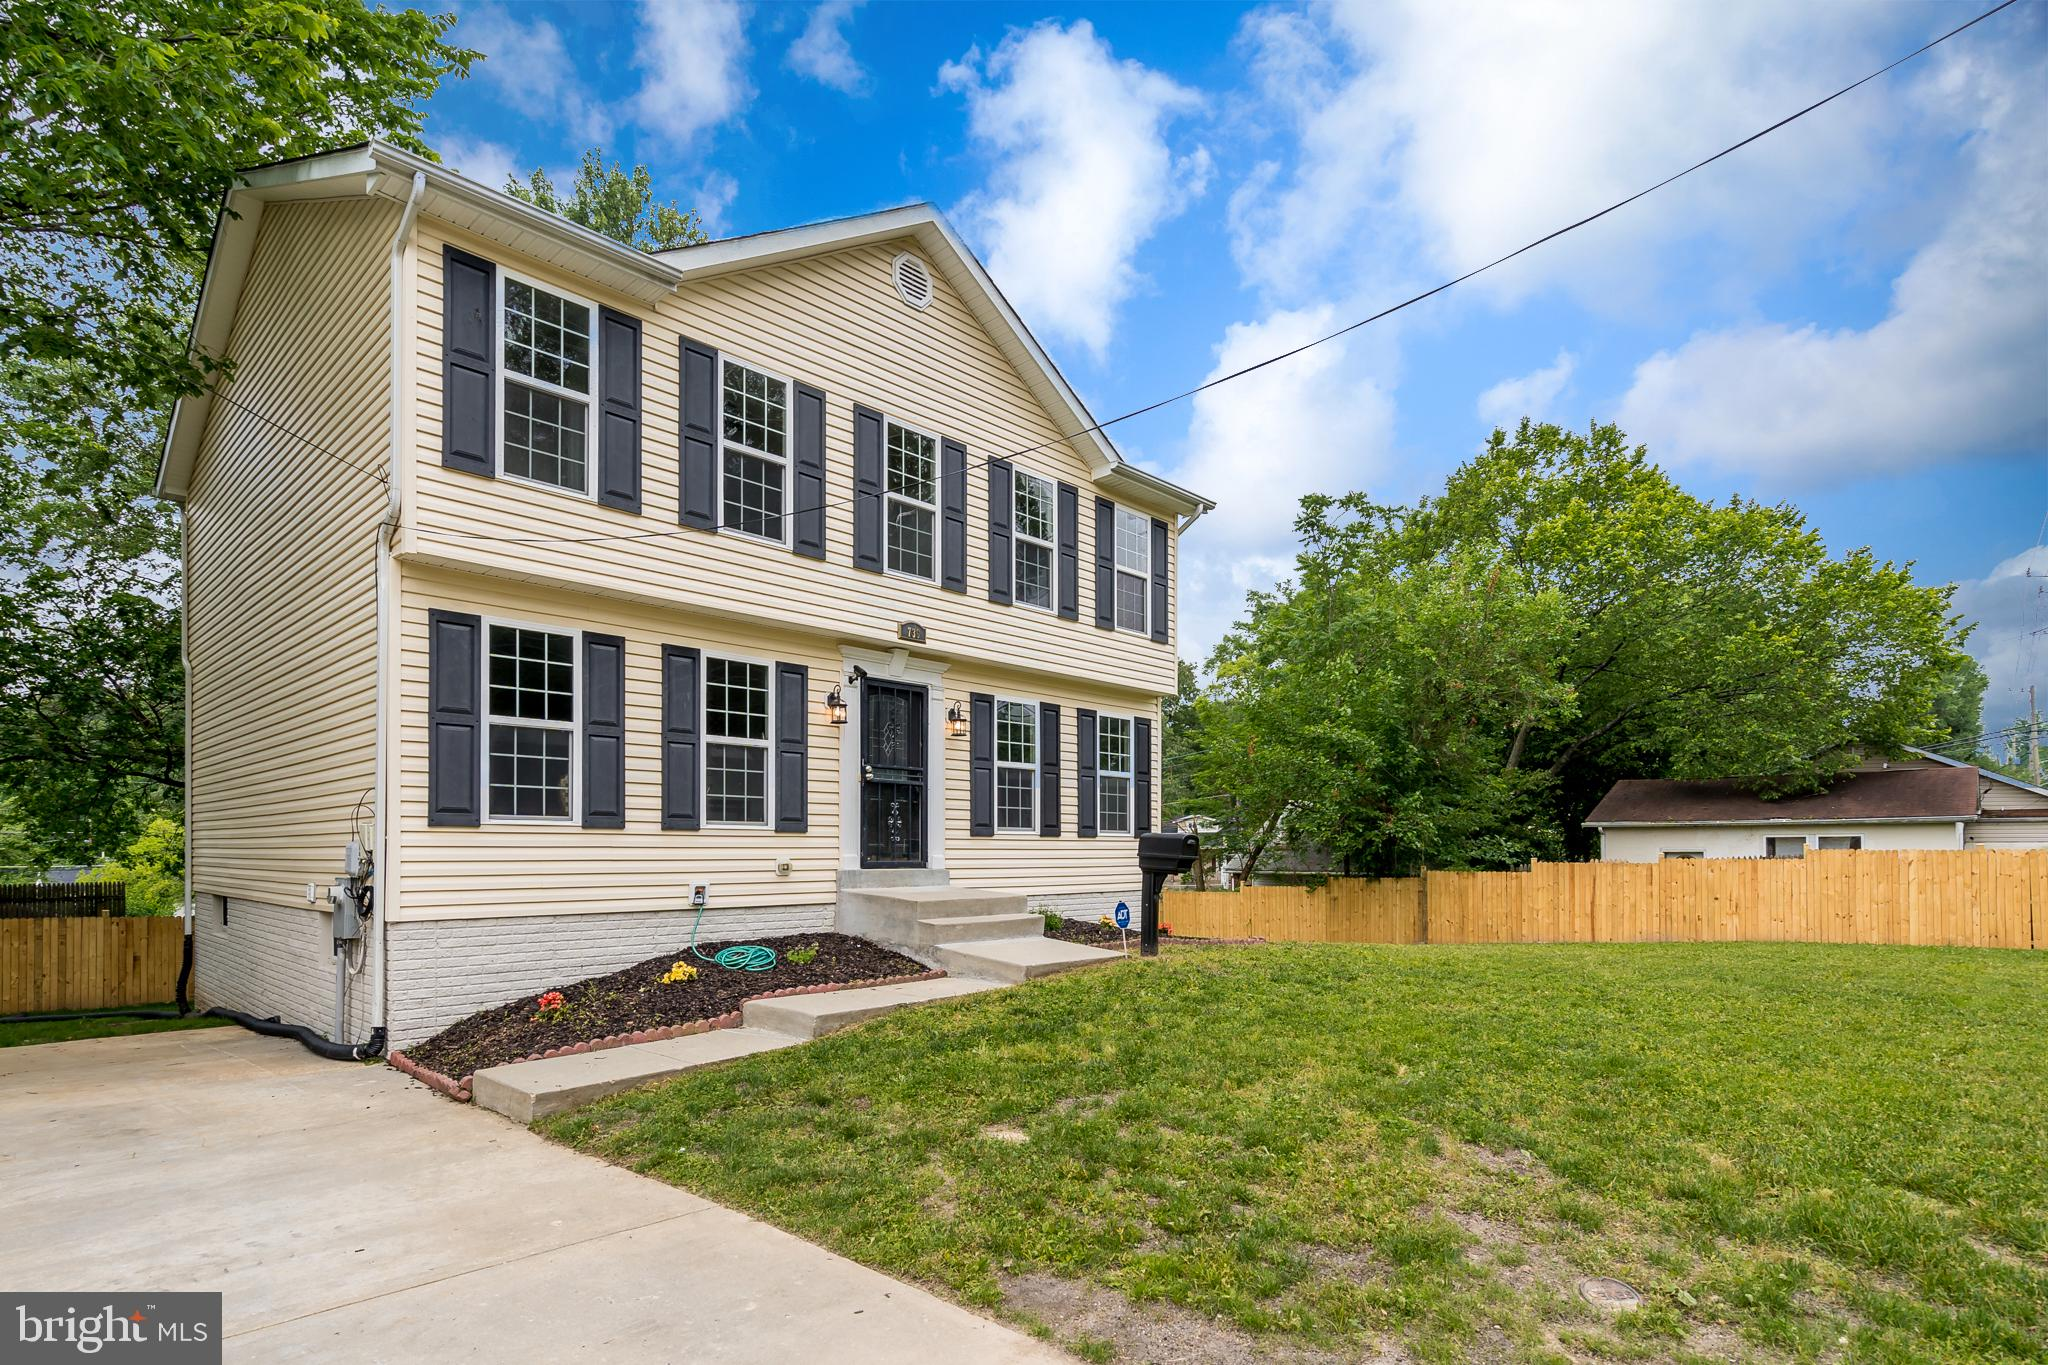 736 LARCHMONT AVENUE, CAPITOL HEIGHTS, MD 20743